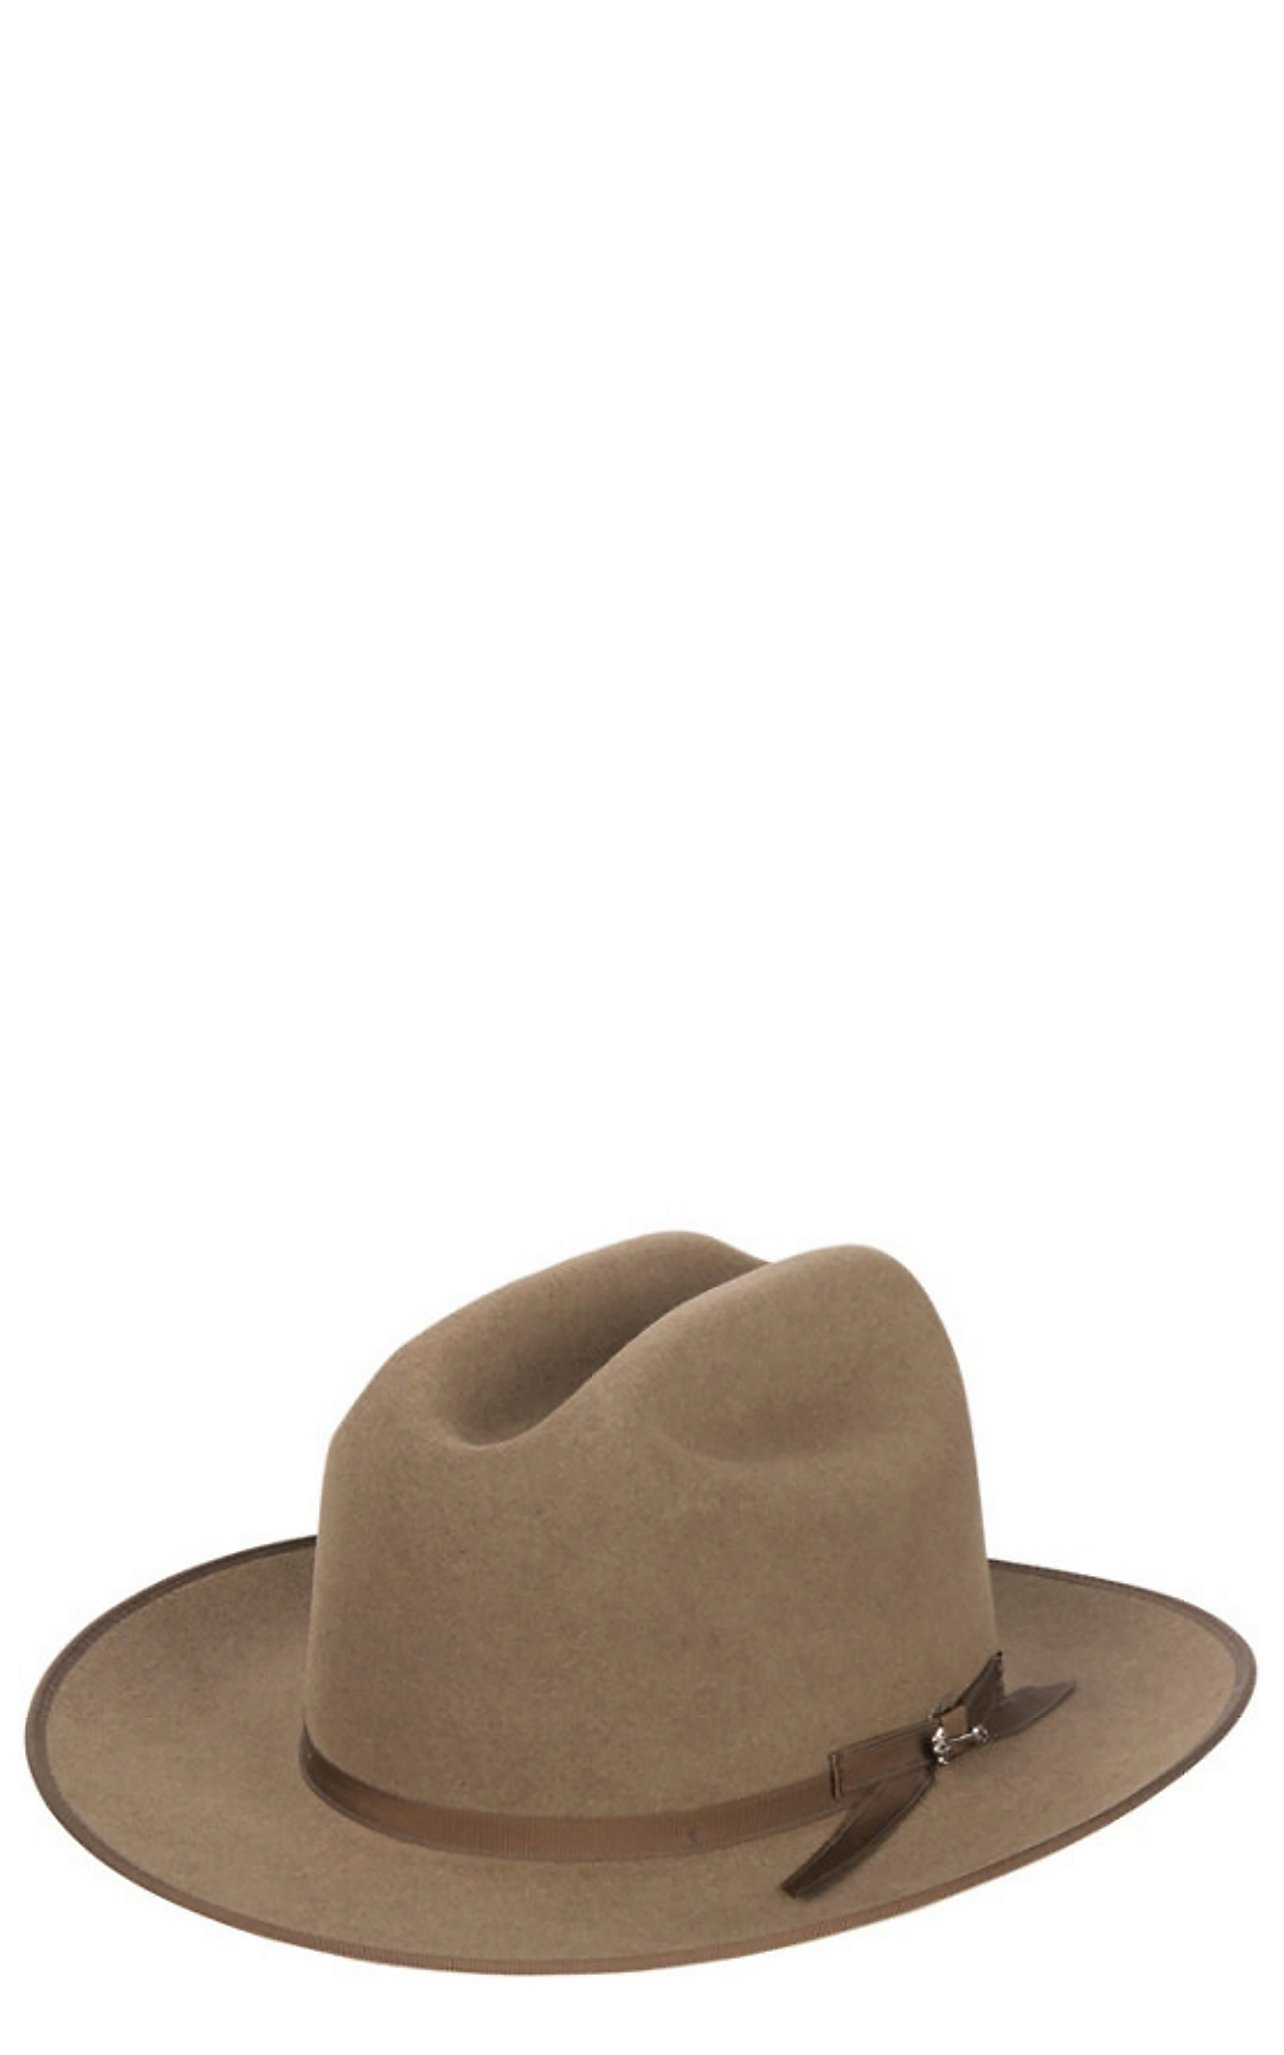 Stetson 6X Open Road Brown Mix Felt Cowboy Hat  a431183fd51